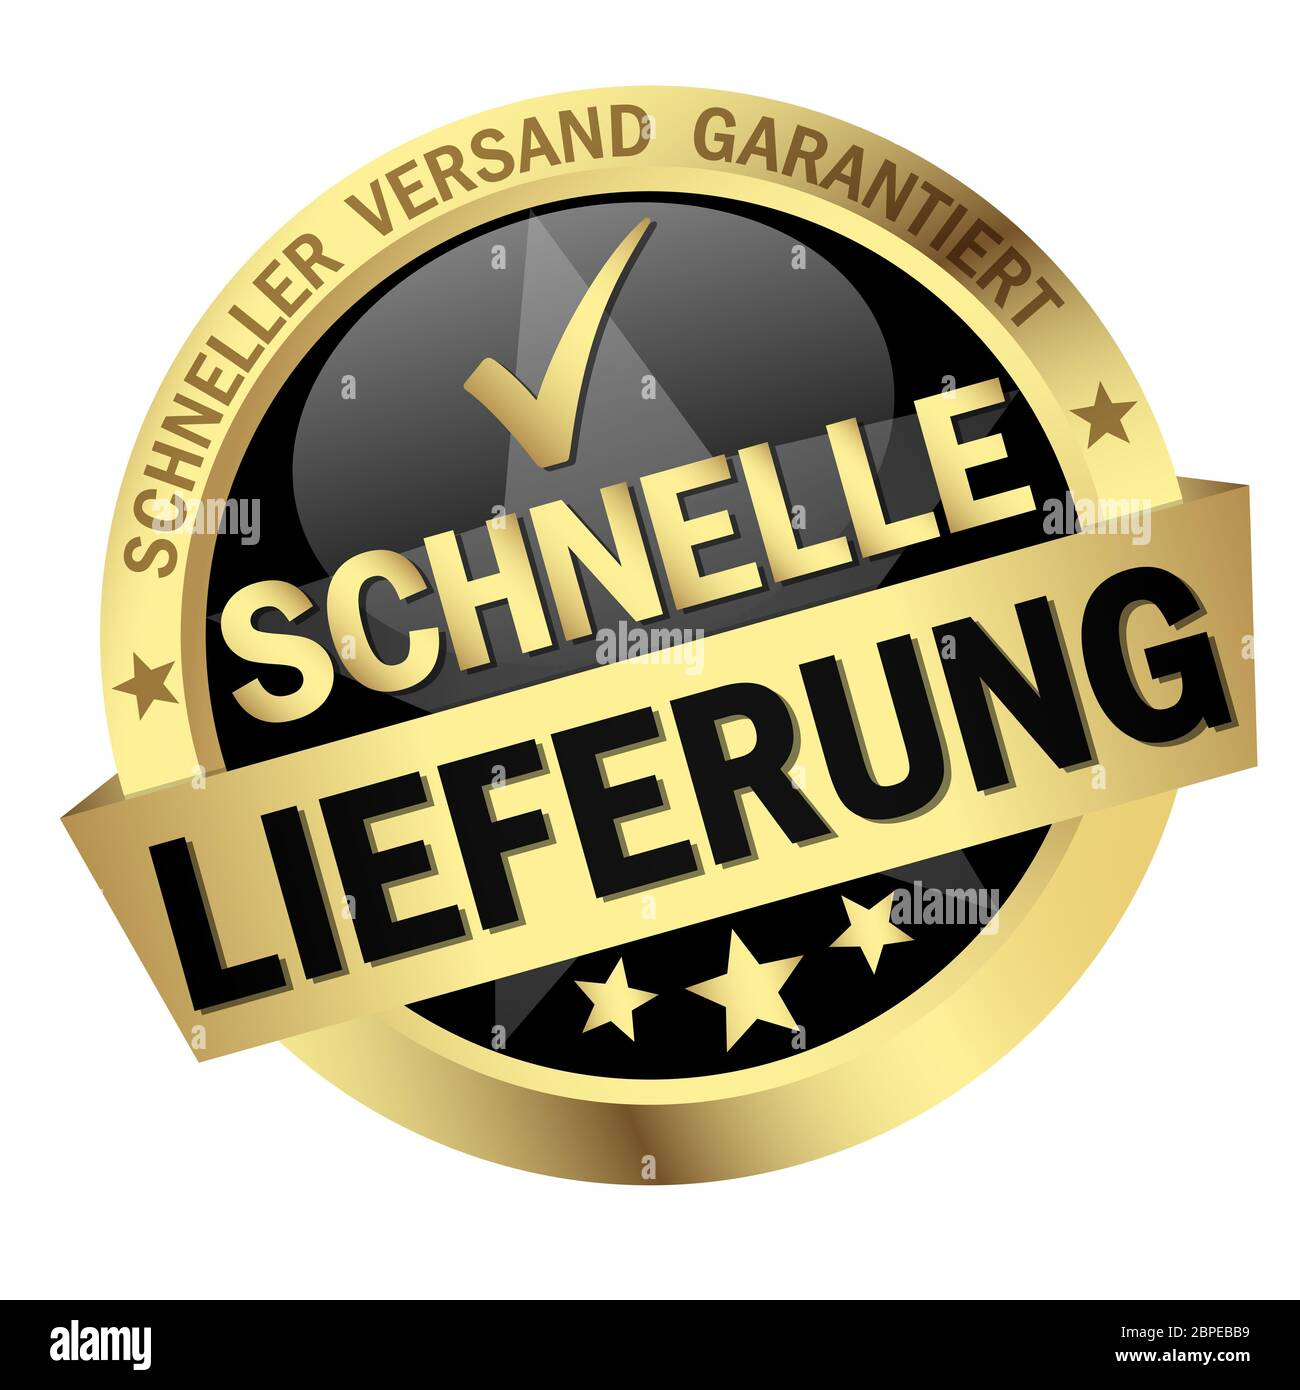 colored button with banner and text - Schnelle Lieferung Stock Photo